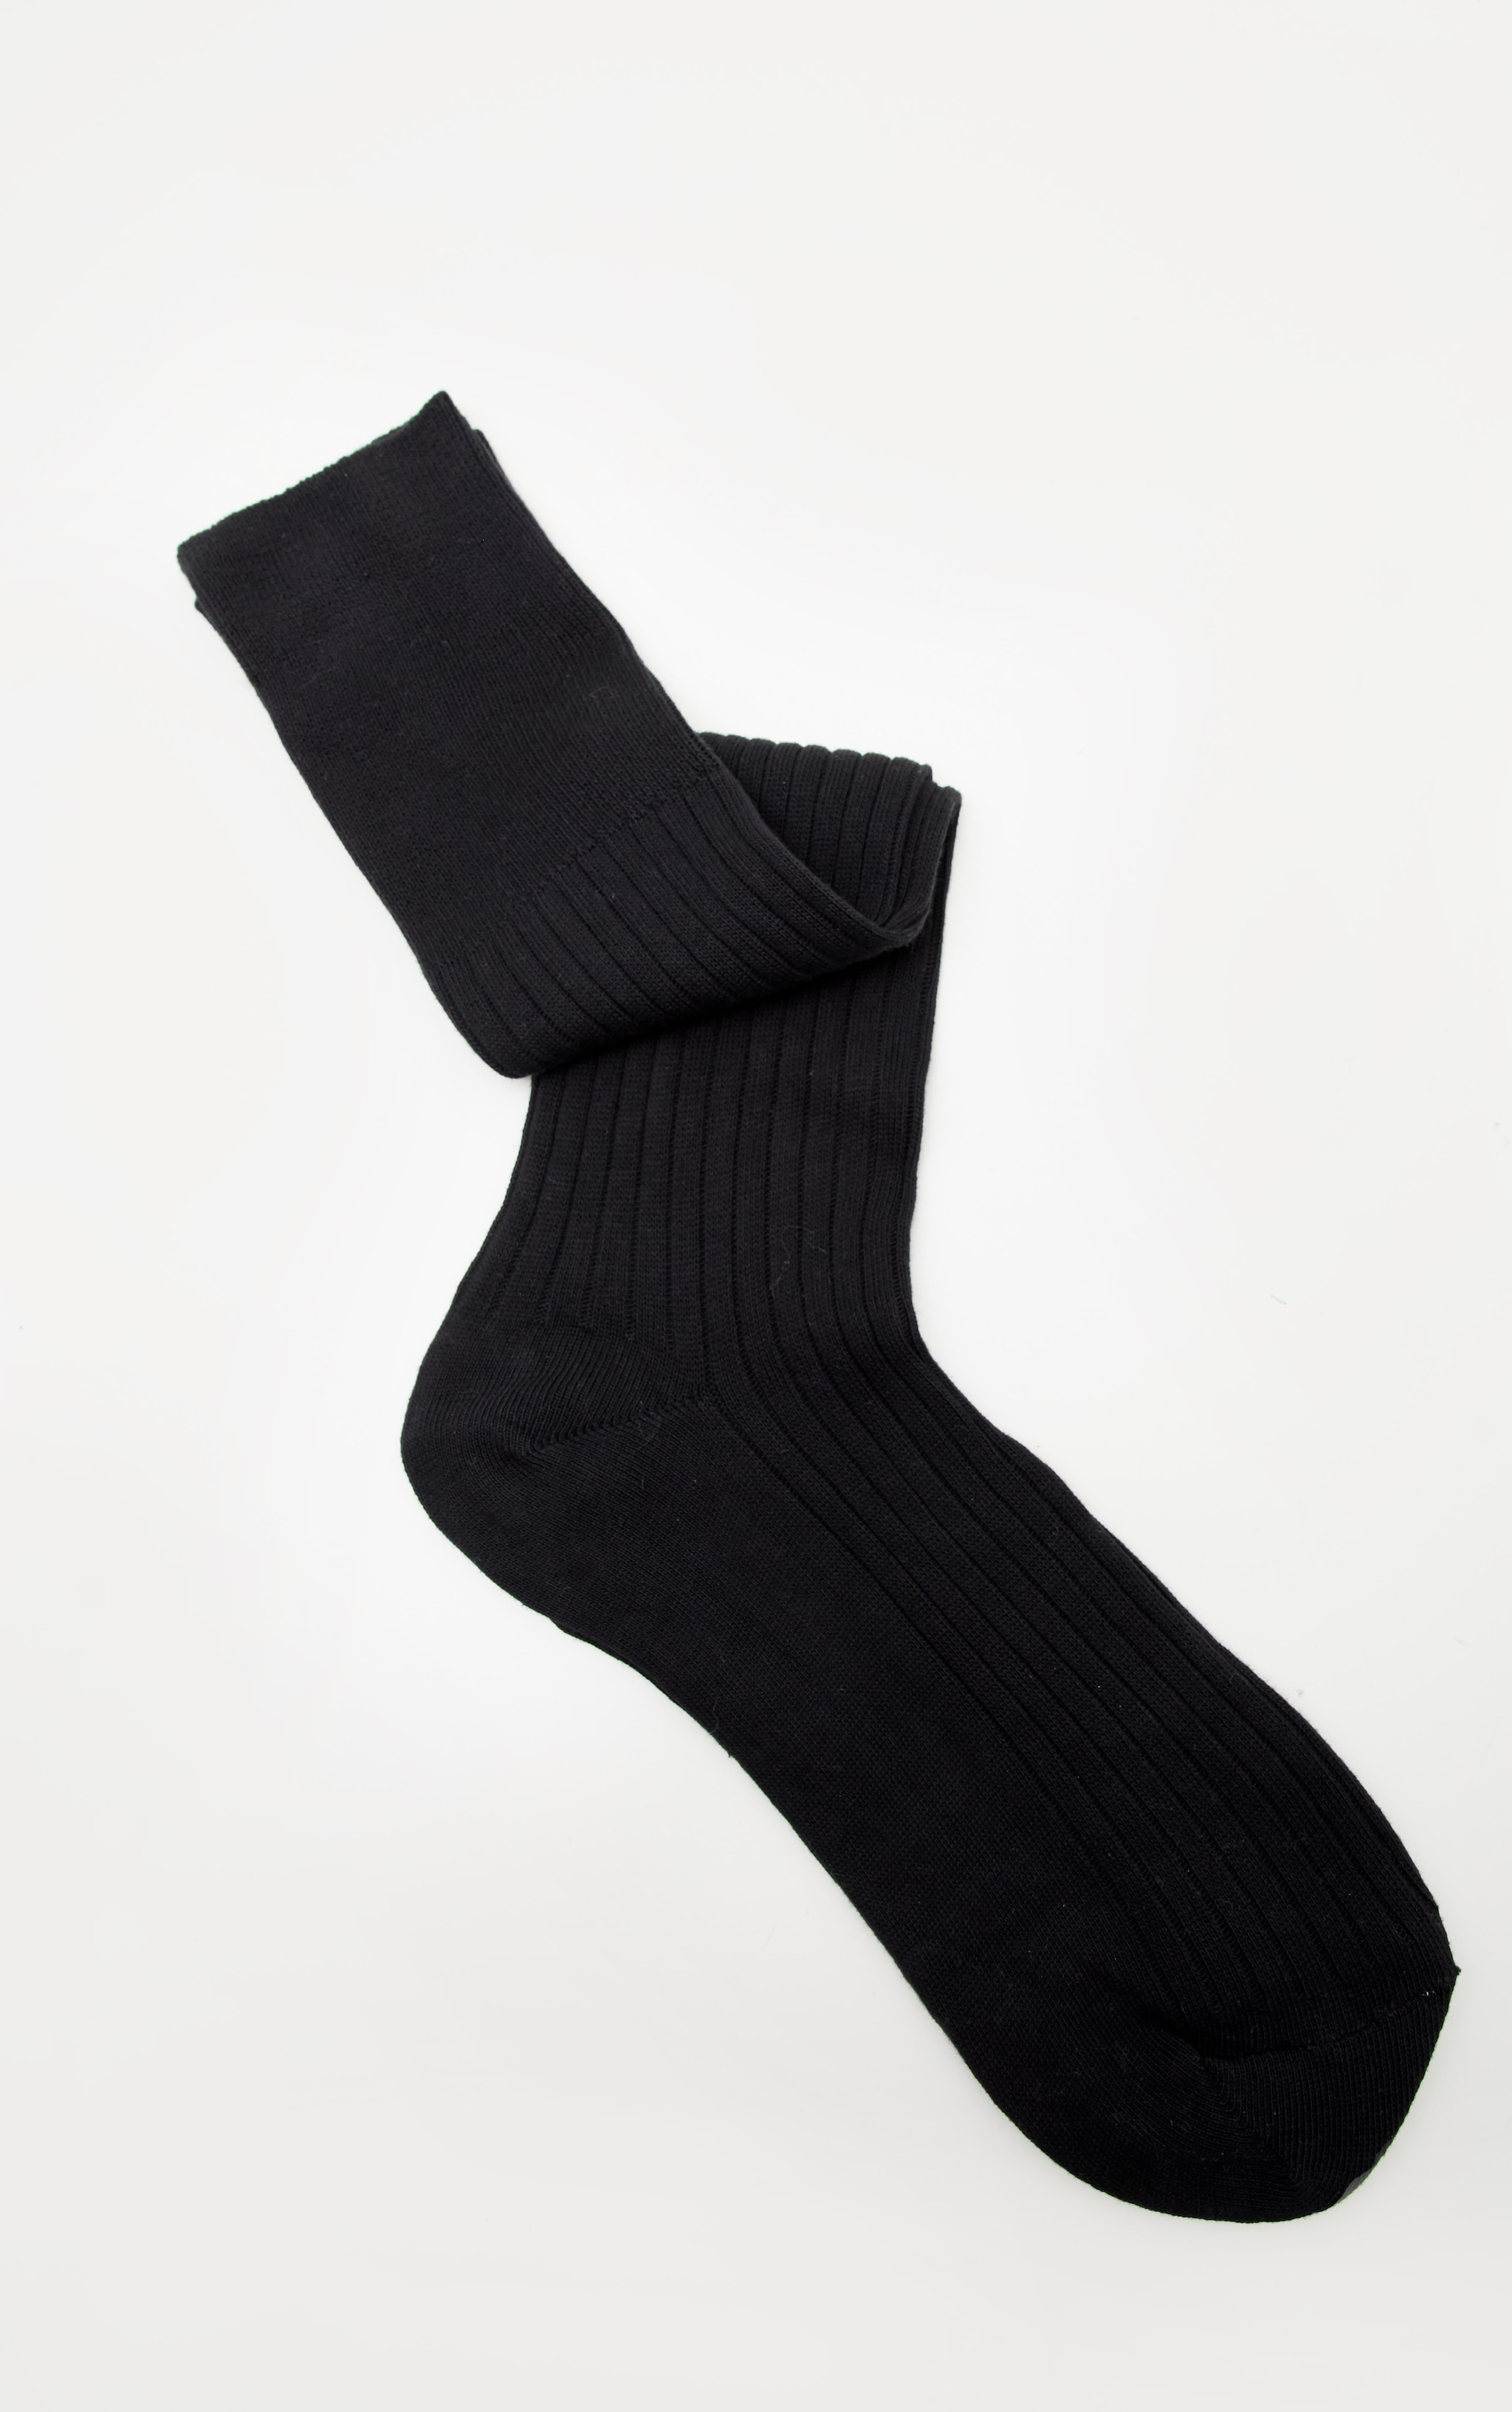 Black Knee High Football Socks 3